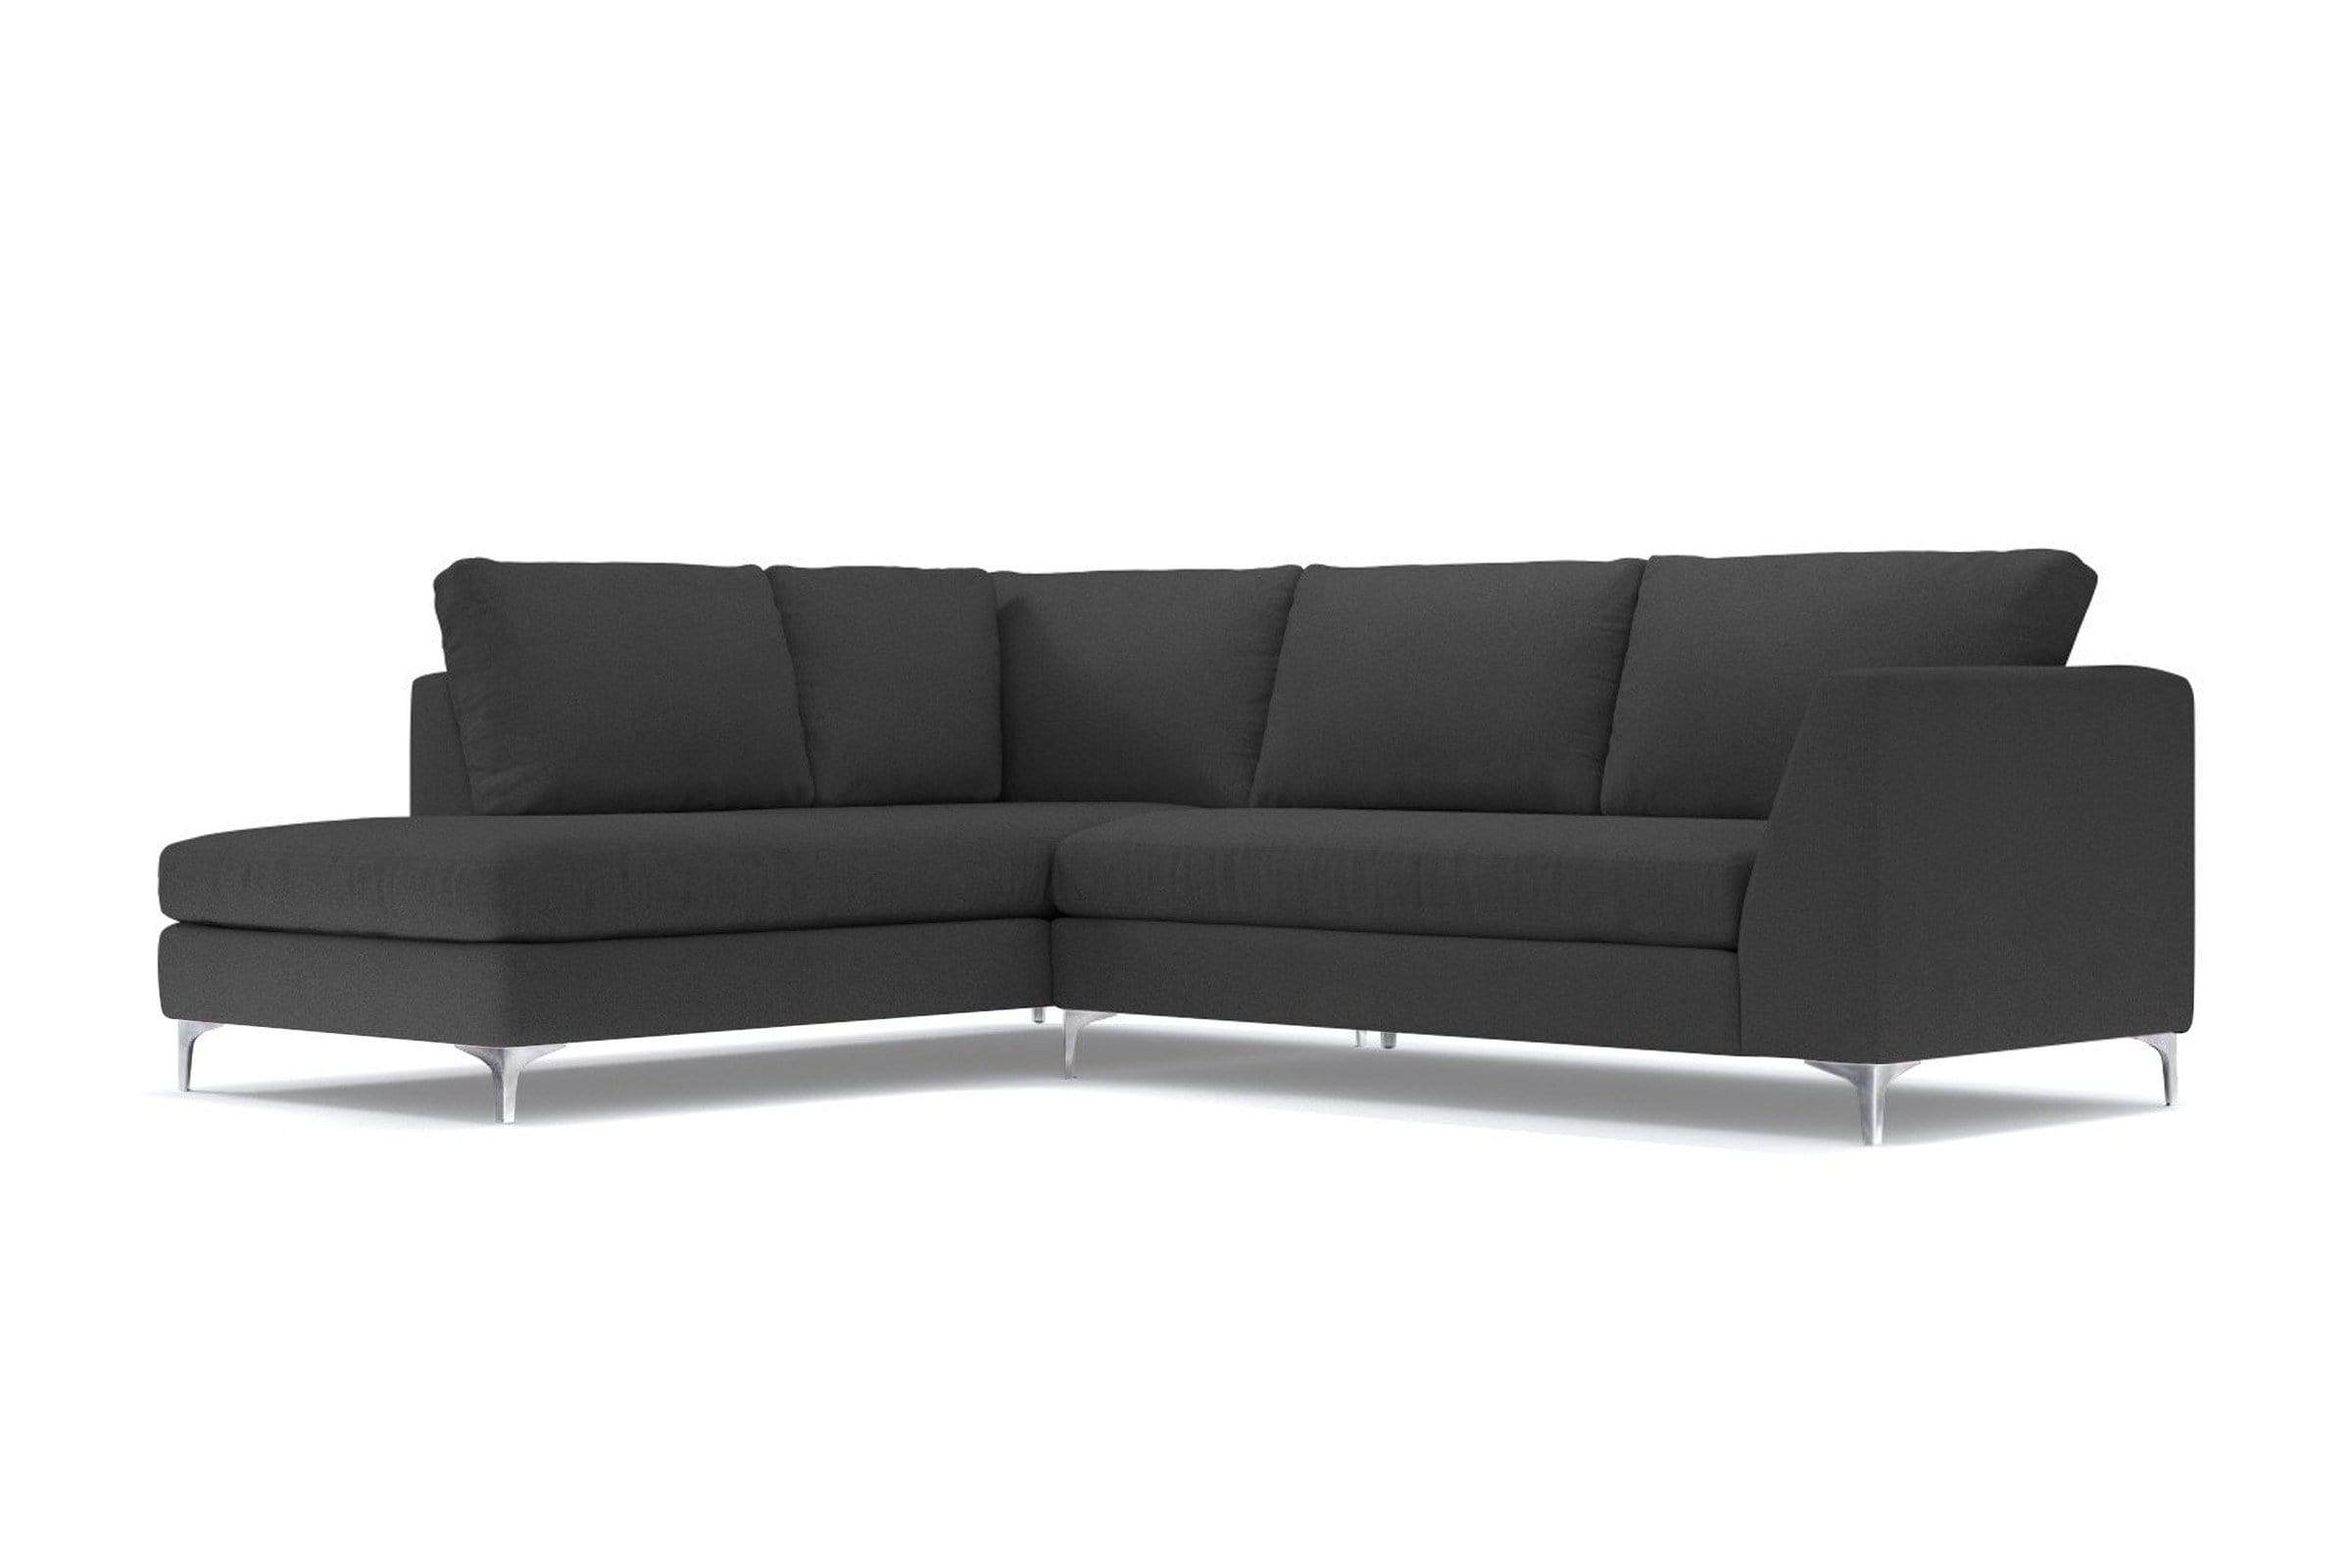 Mulholland 2pc Sectional Sofa - Gray - Modern Sectional Sofa Made in USA - Sold by Apt2B